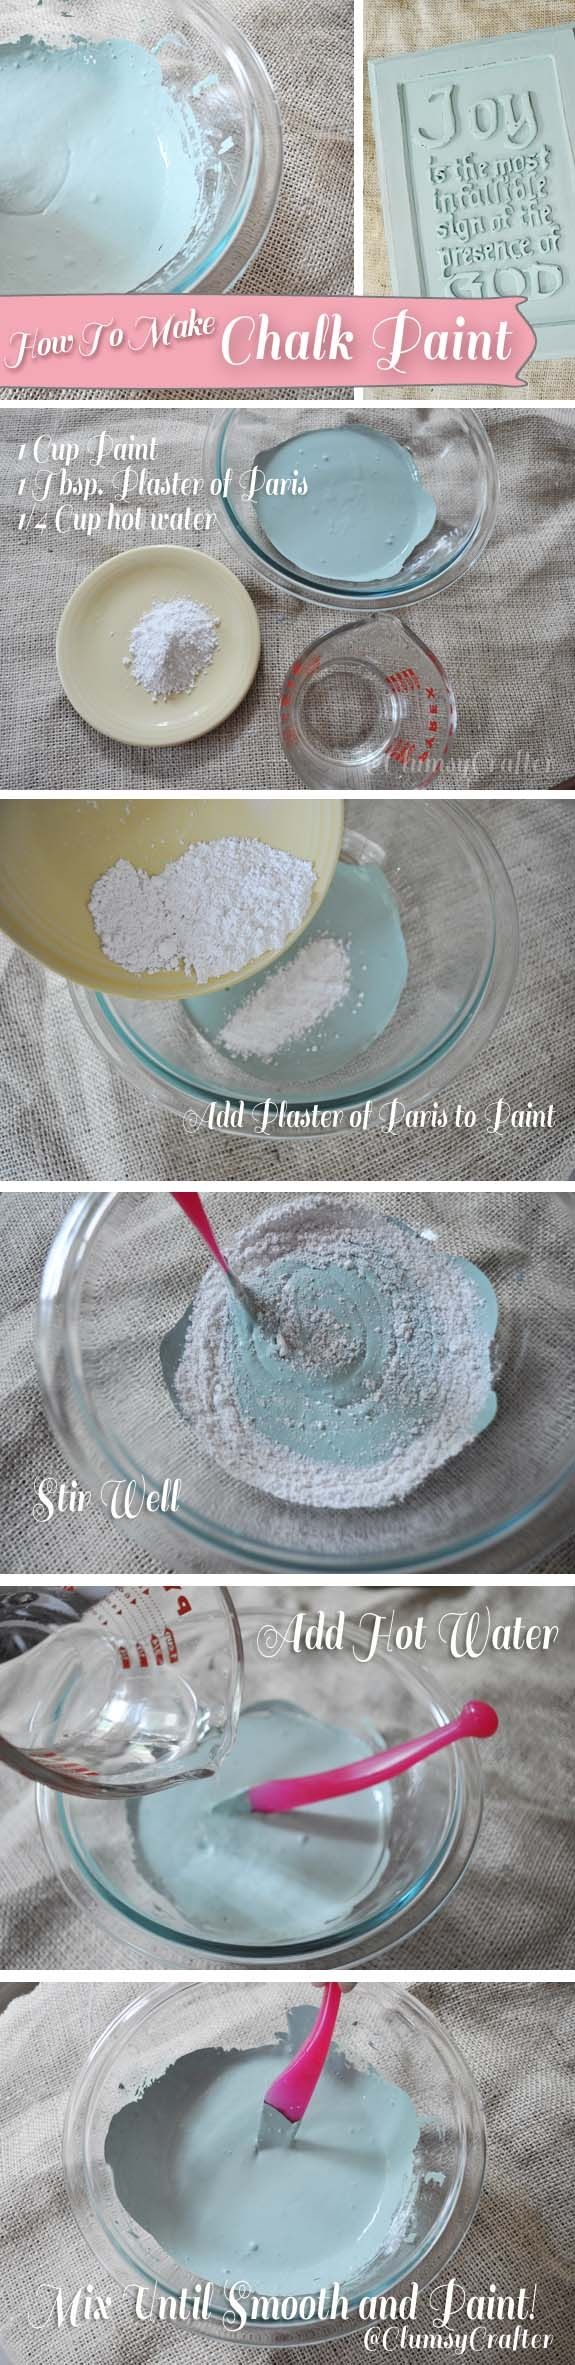 How To Make Chalk Paint Pictures Photos And Images For